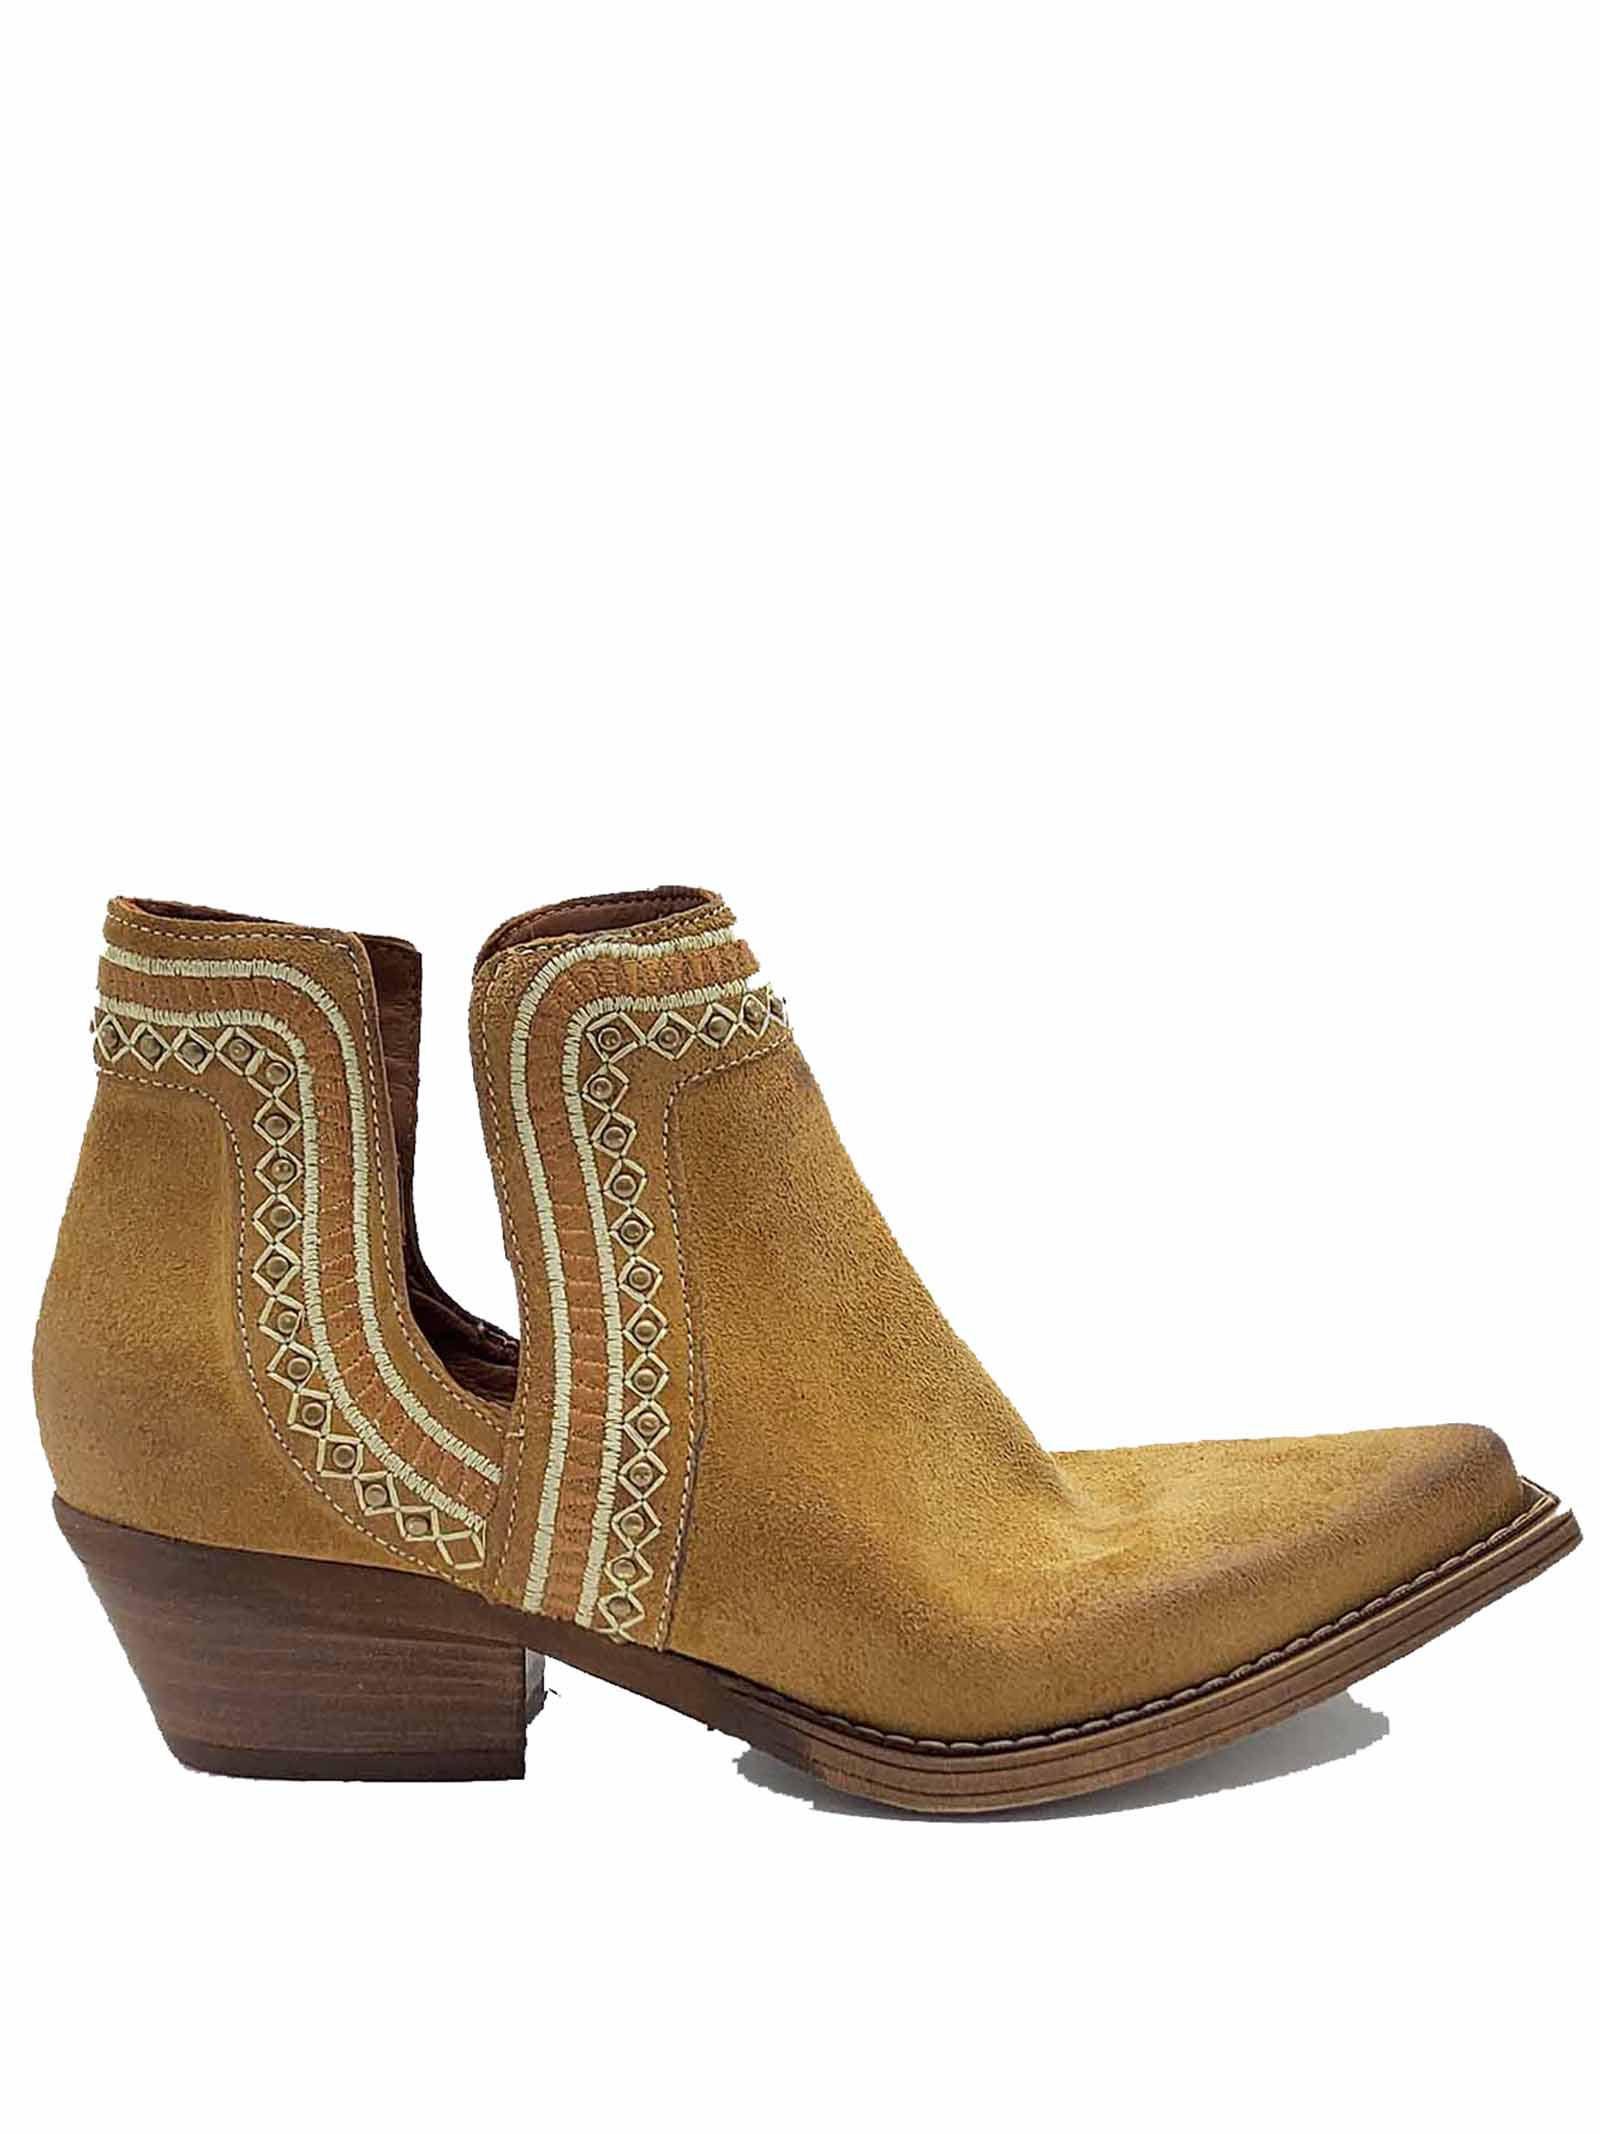 Women's Shoes Texan Ankle Boots In Camel Suede With Embroidery Zoe   Ankle Boots   NEZ01014